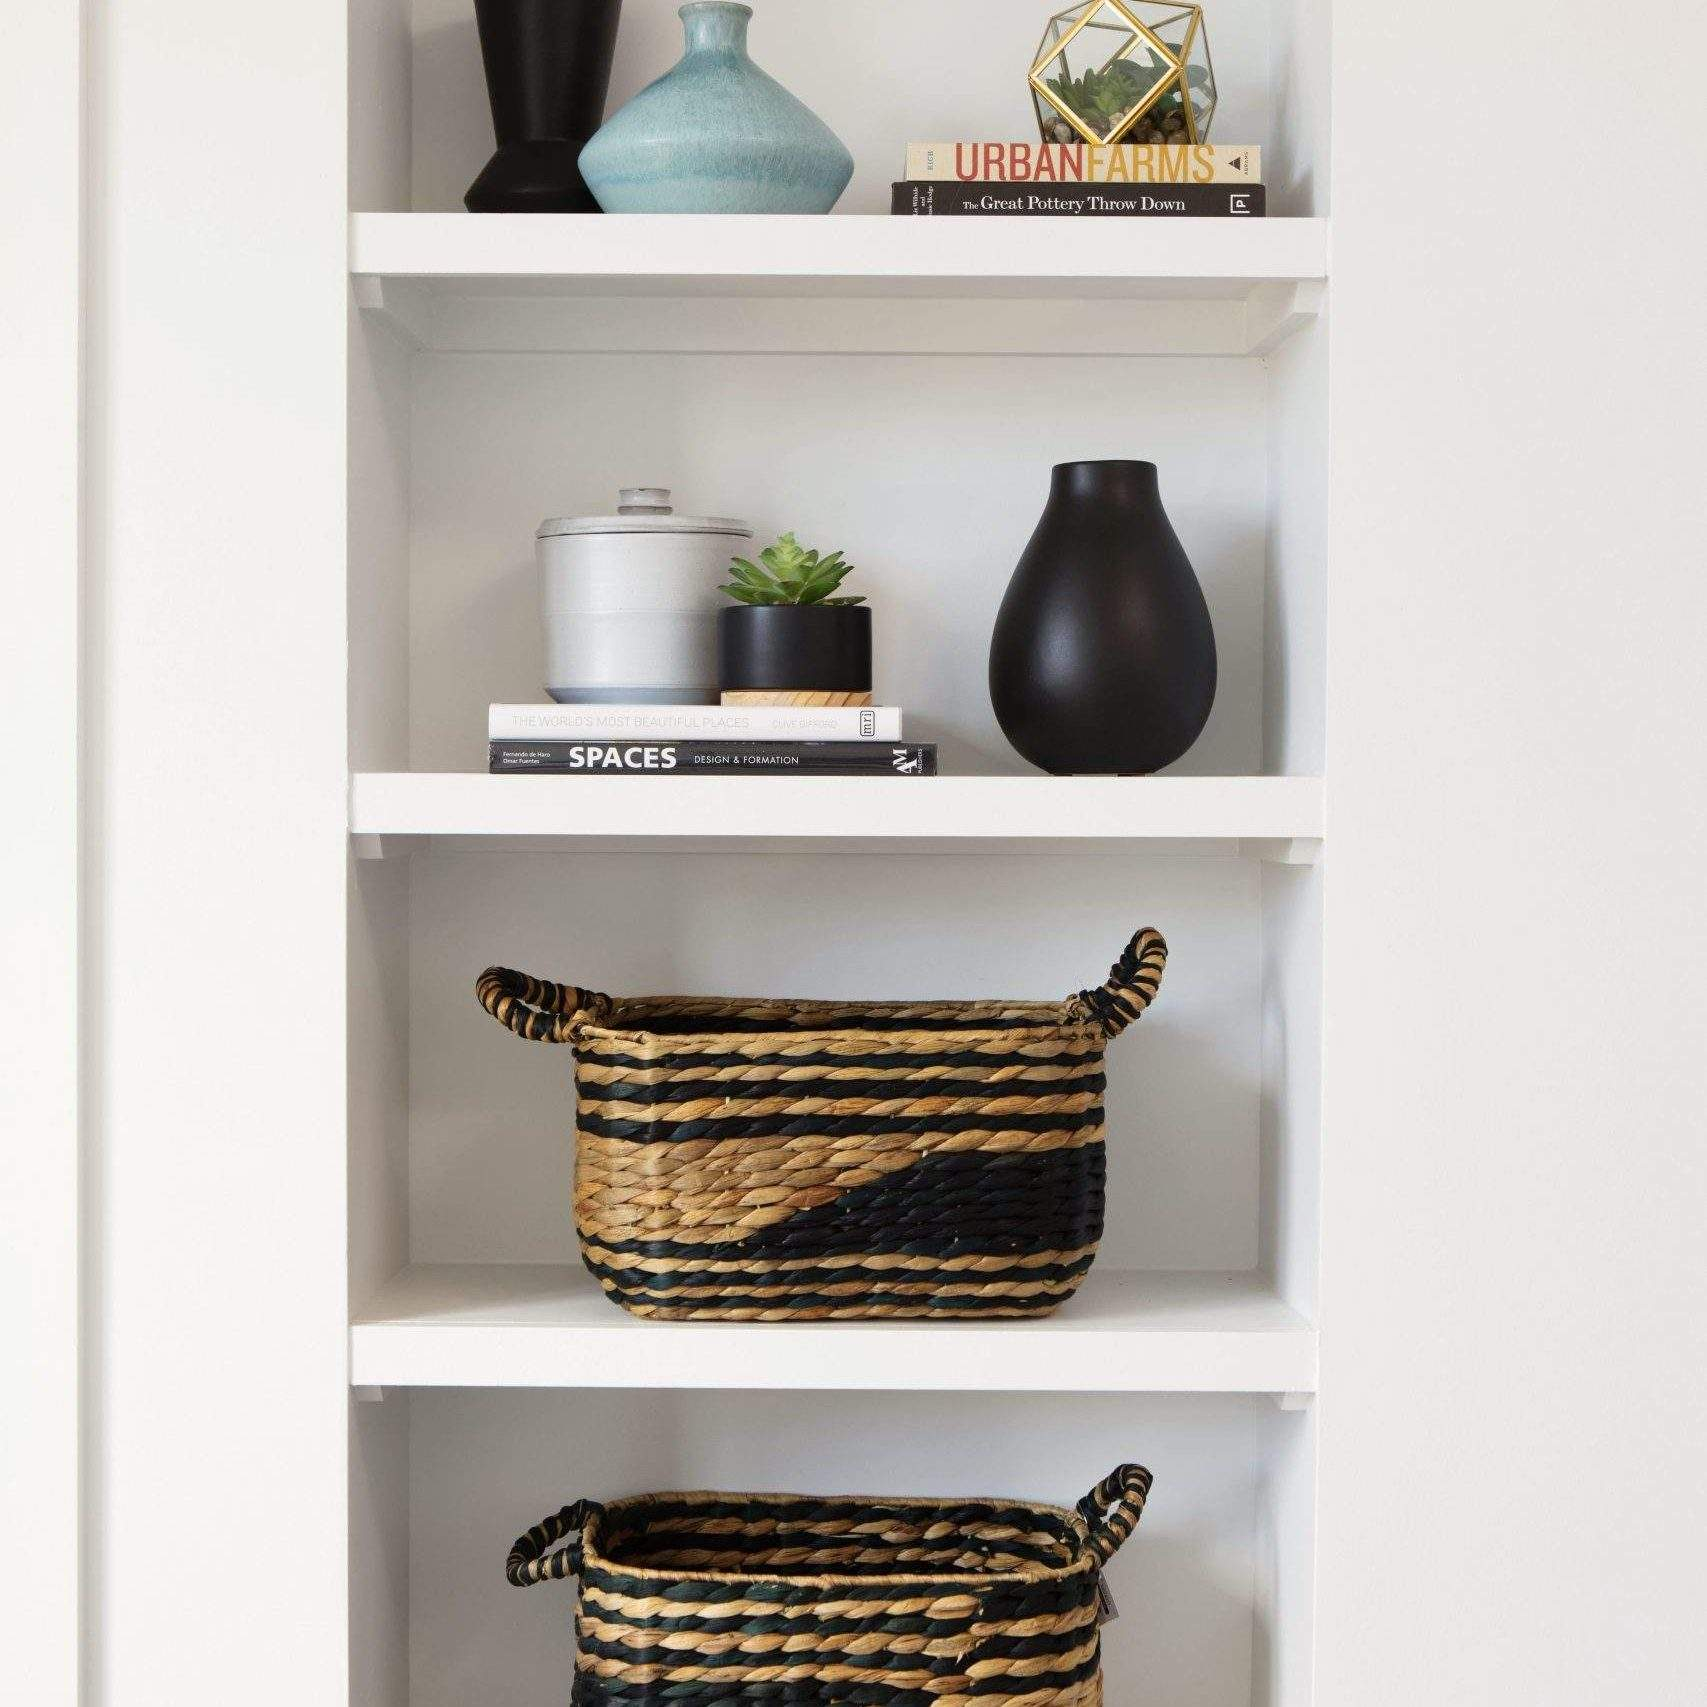 travis heights | built in shelves with baskets and vases | austin, texas